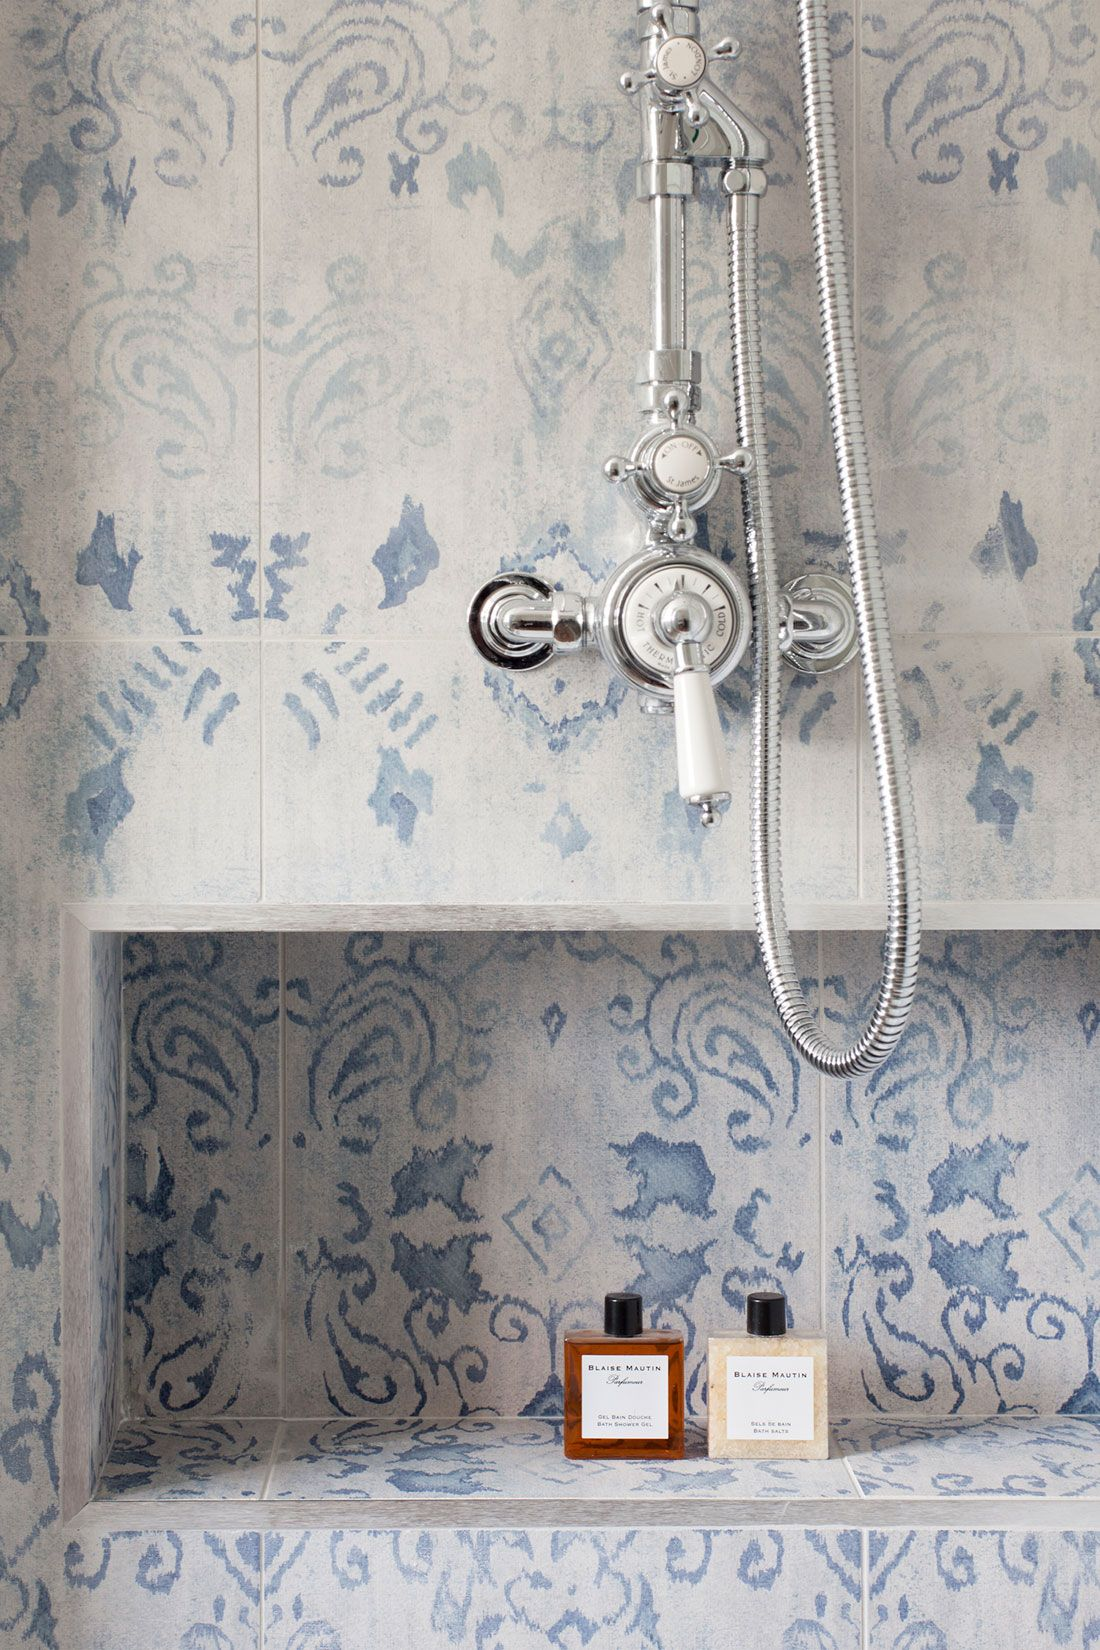 Pin by Jane on Turkish home ideas | Pinterest | Bath, Detail and ...